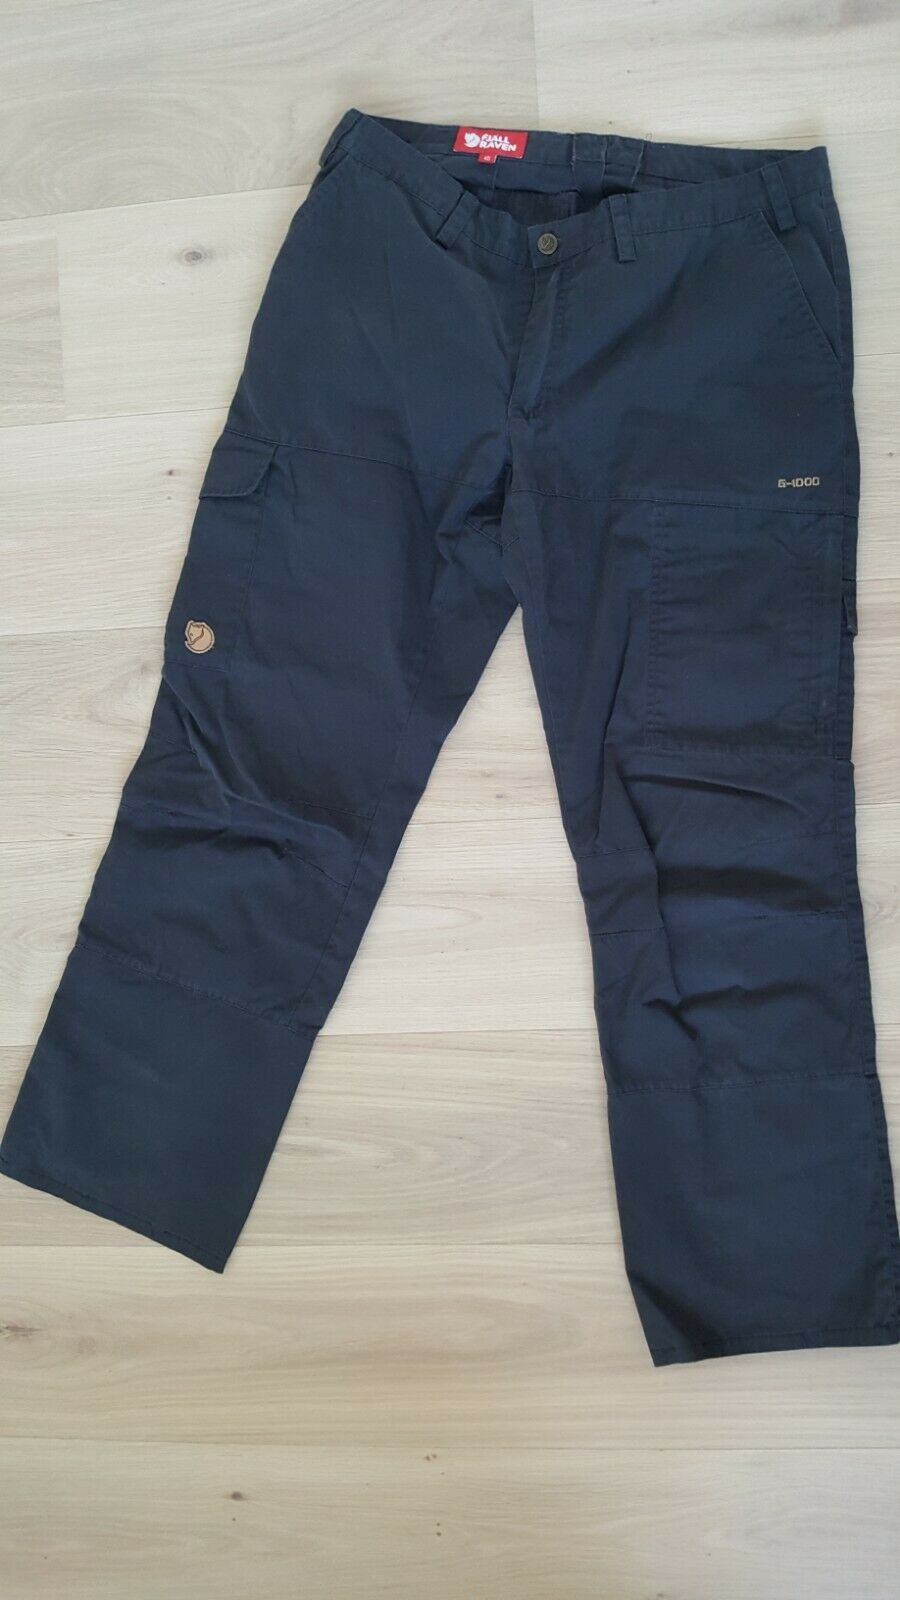 Fjallraven Hiking Pants G-1000 Trekking Trouses Womannen's afmeting 40